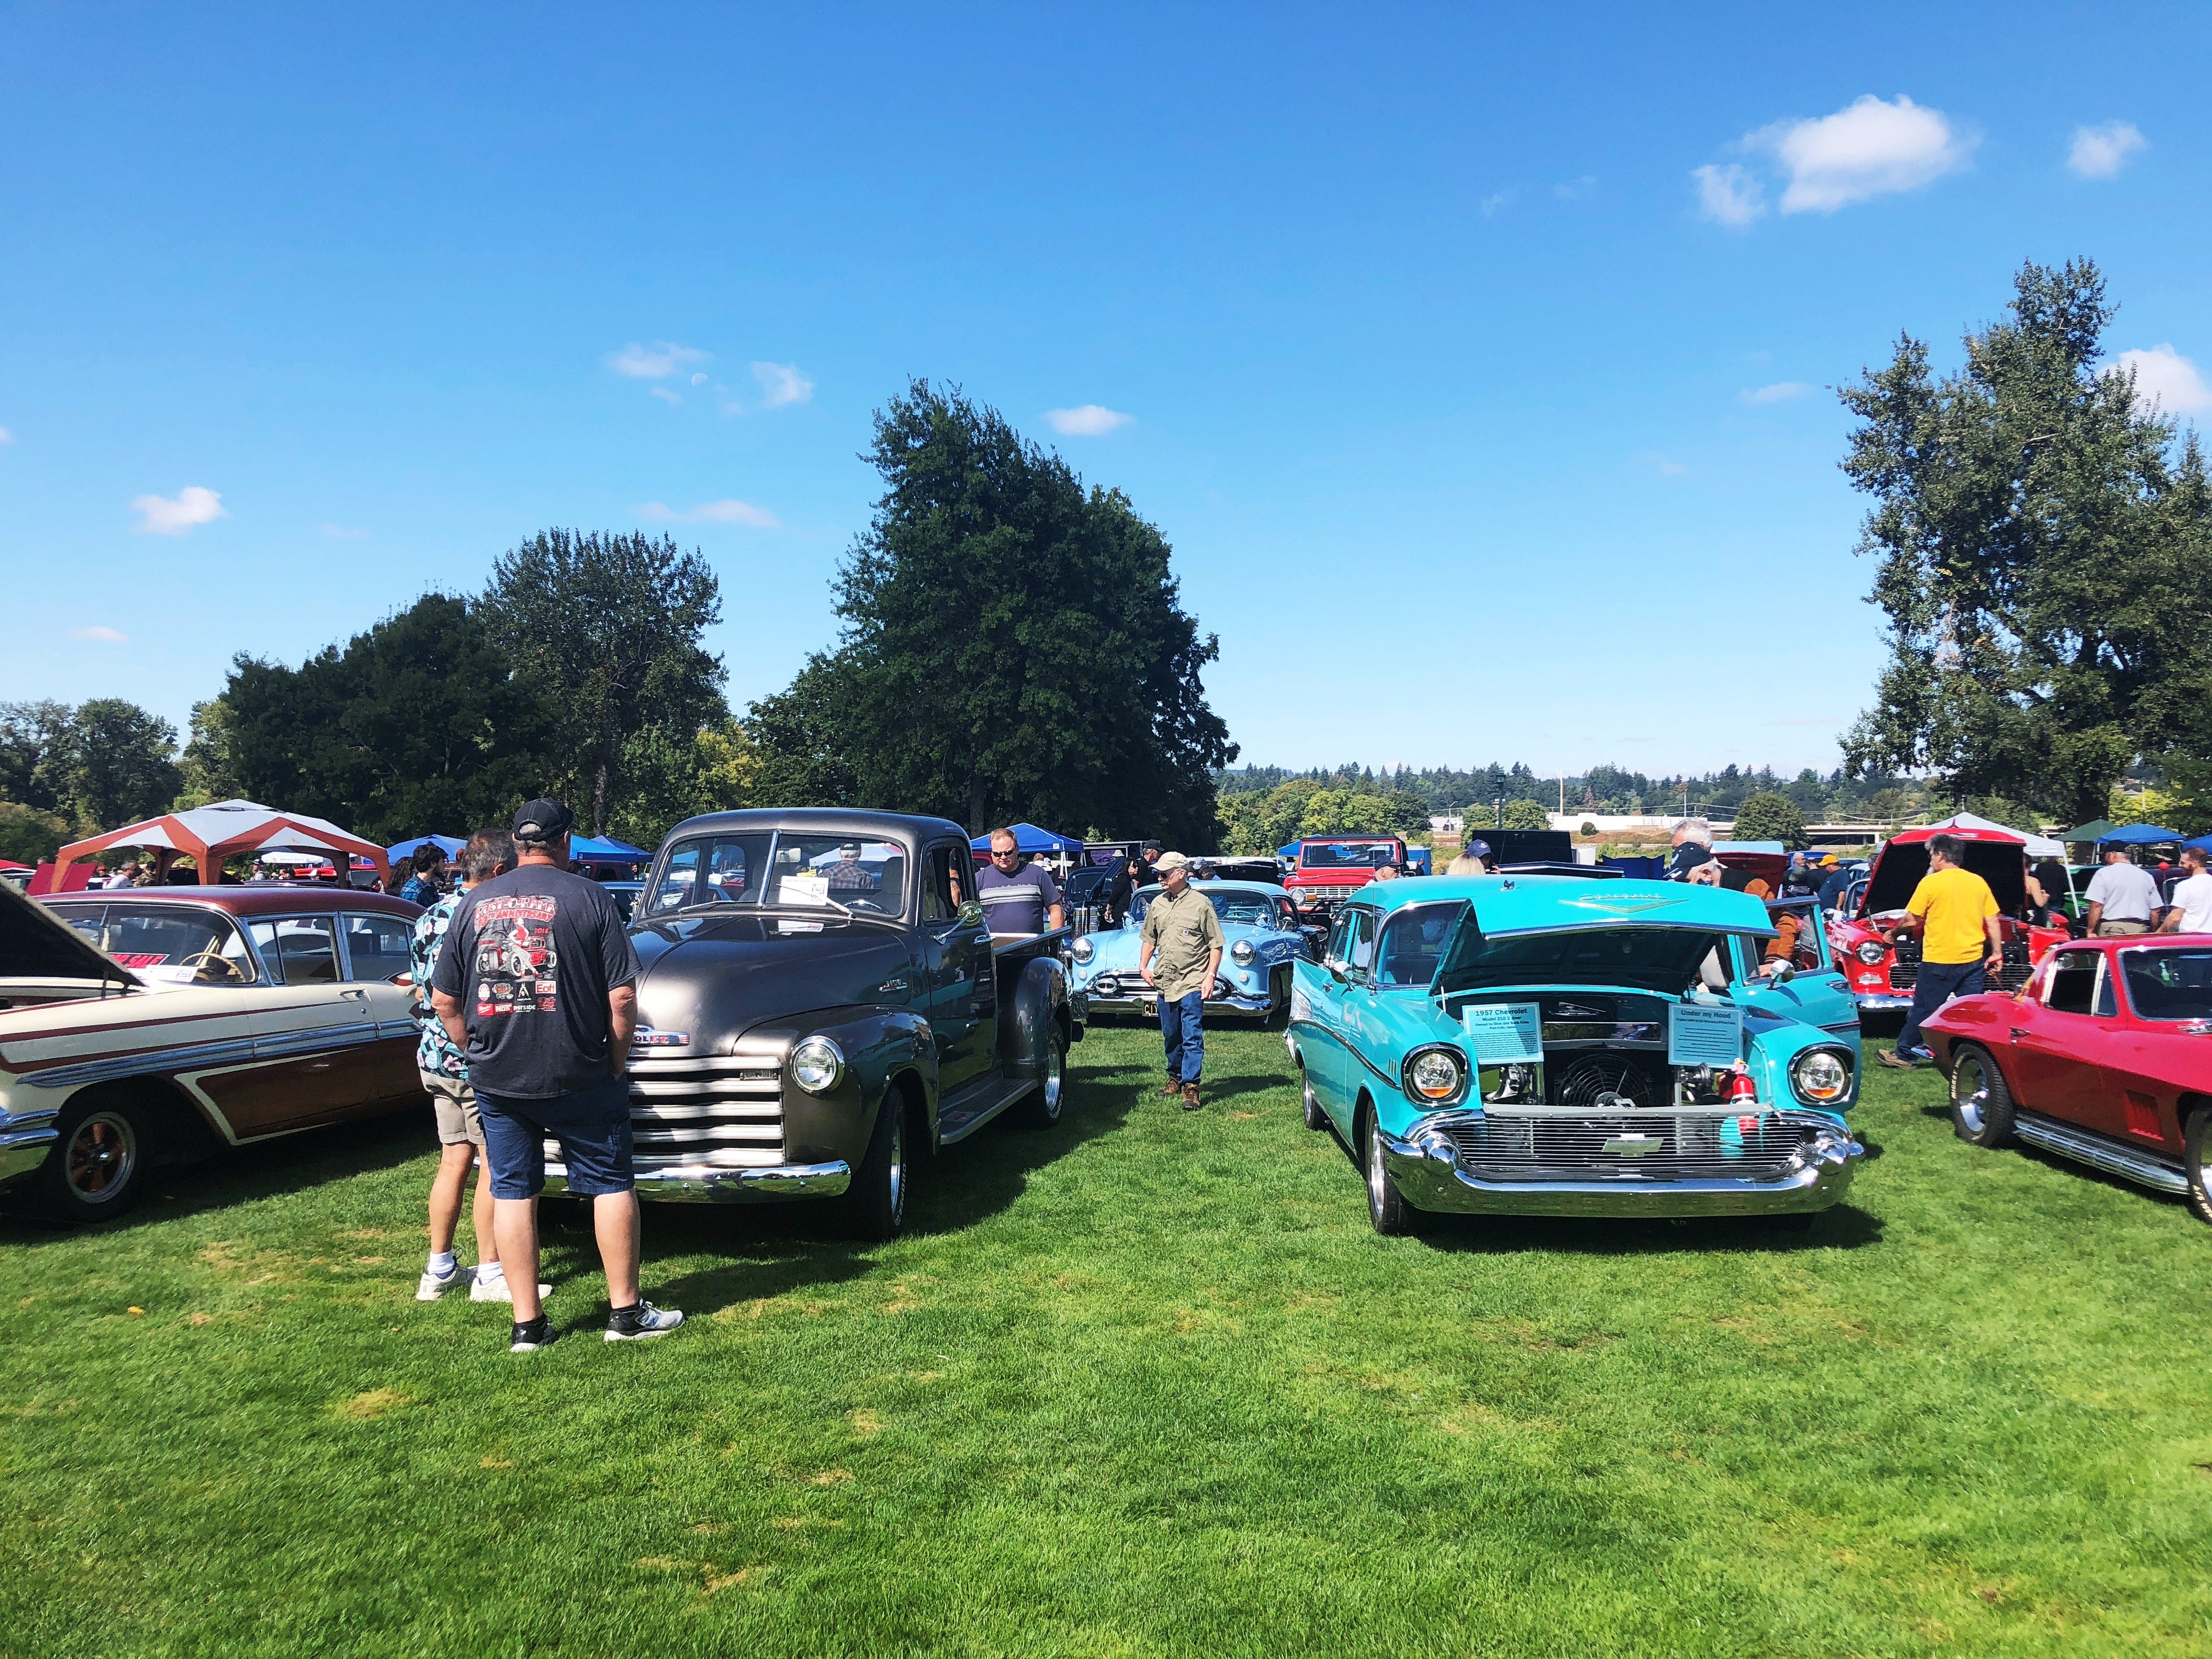 Spectators walk around the 27th Annual Carousel Cruise at Riverfront Park in Salem on Saturday, Sept. 1. The event featured more than 300 cars.